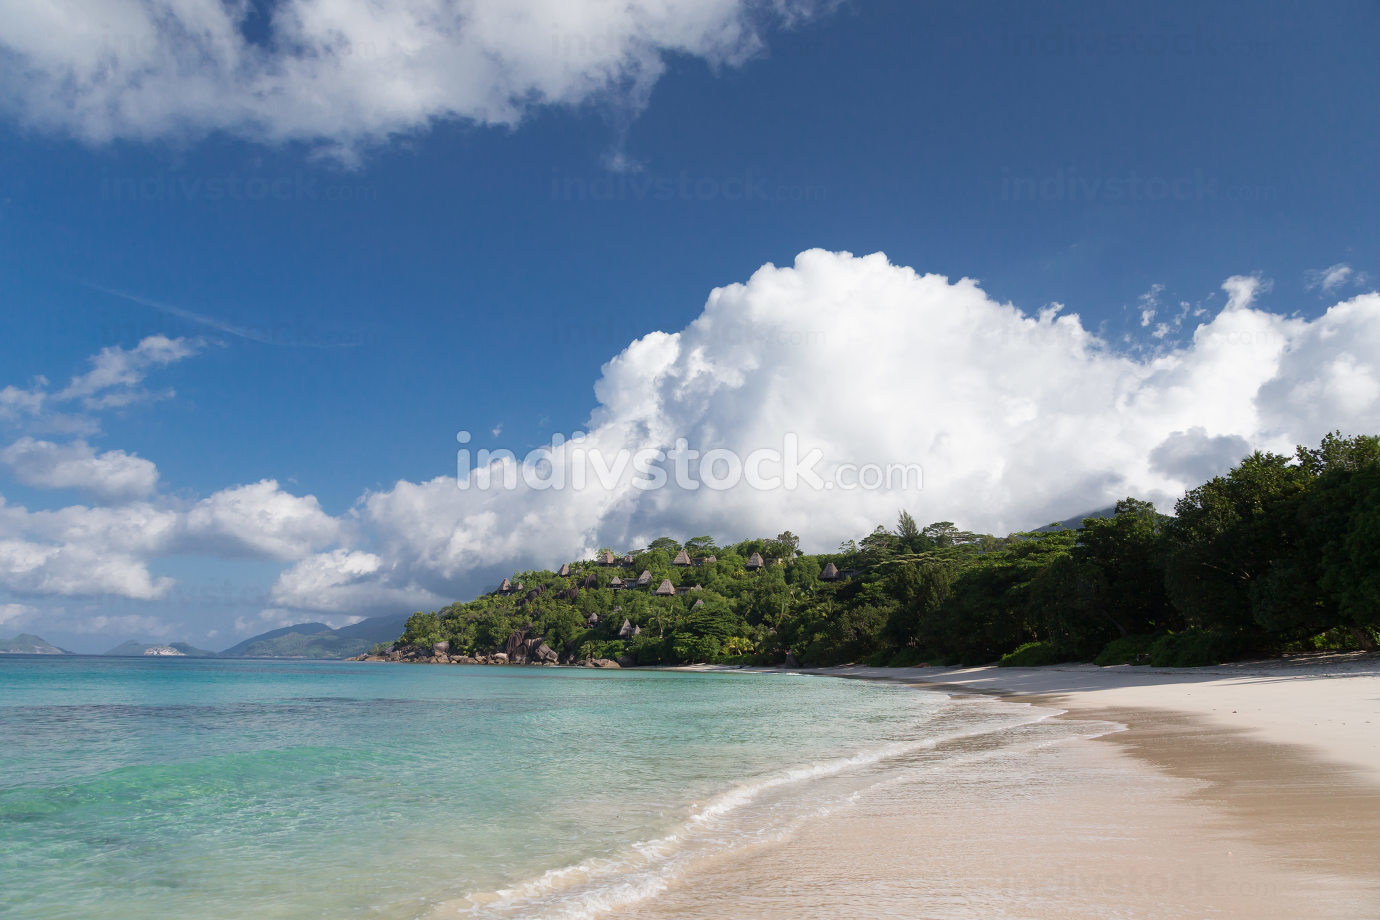 A beach on the Seychelles island with white sand and stones